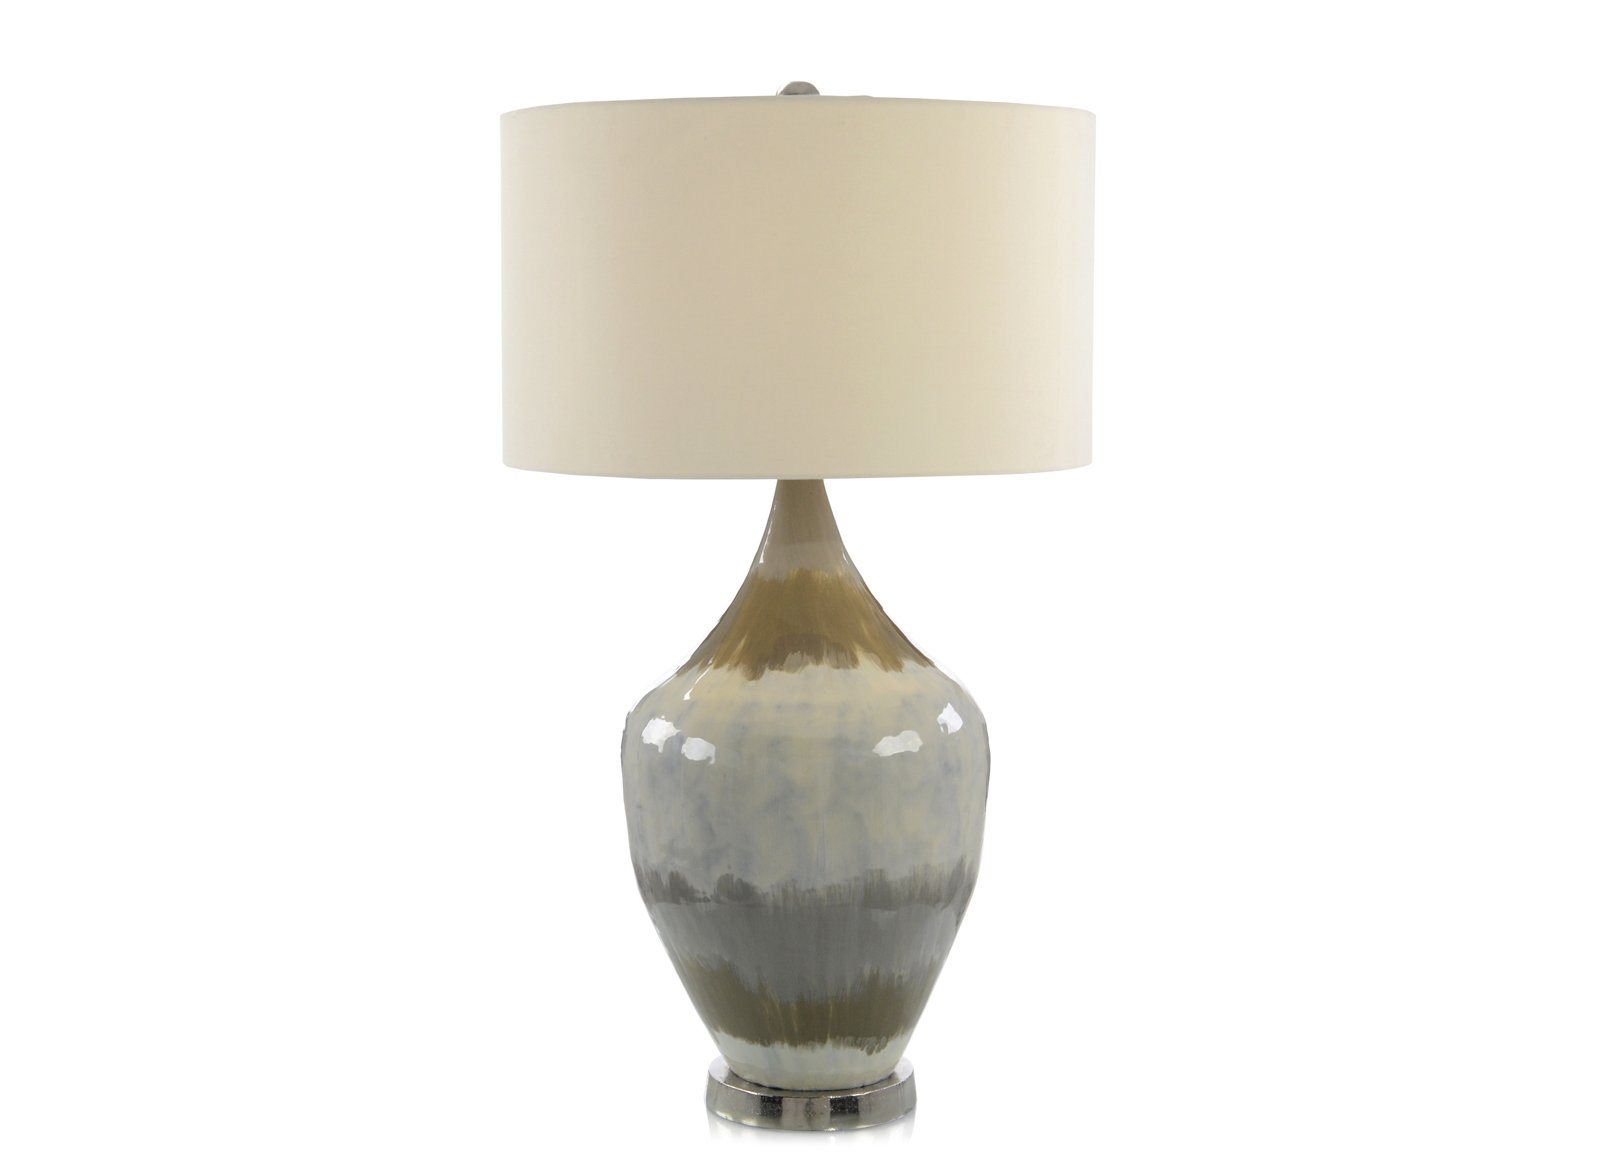 Enameled Earth Tone Table Lamp